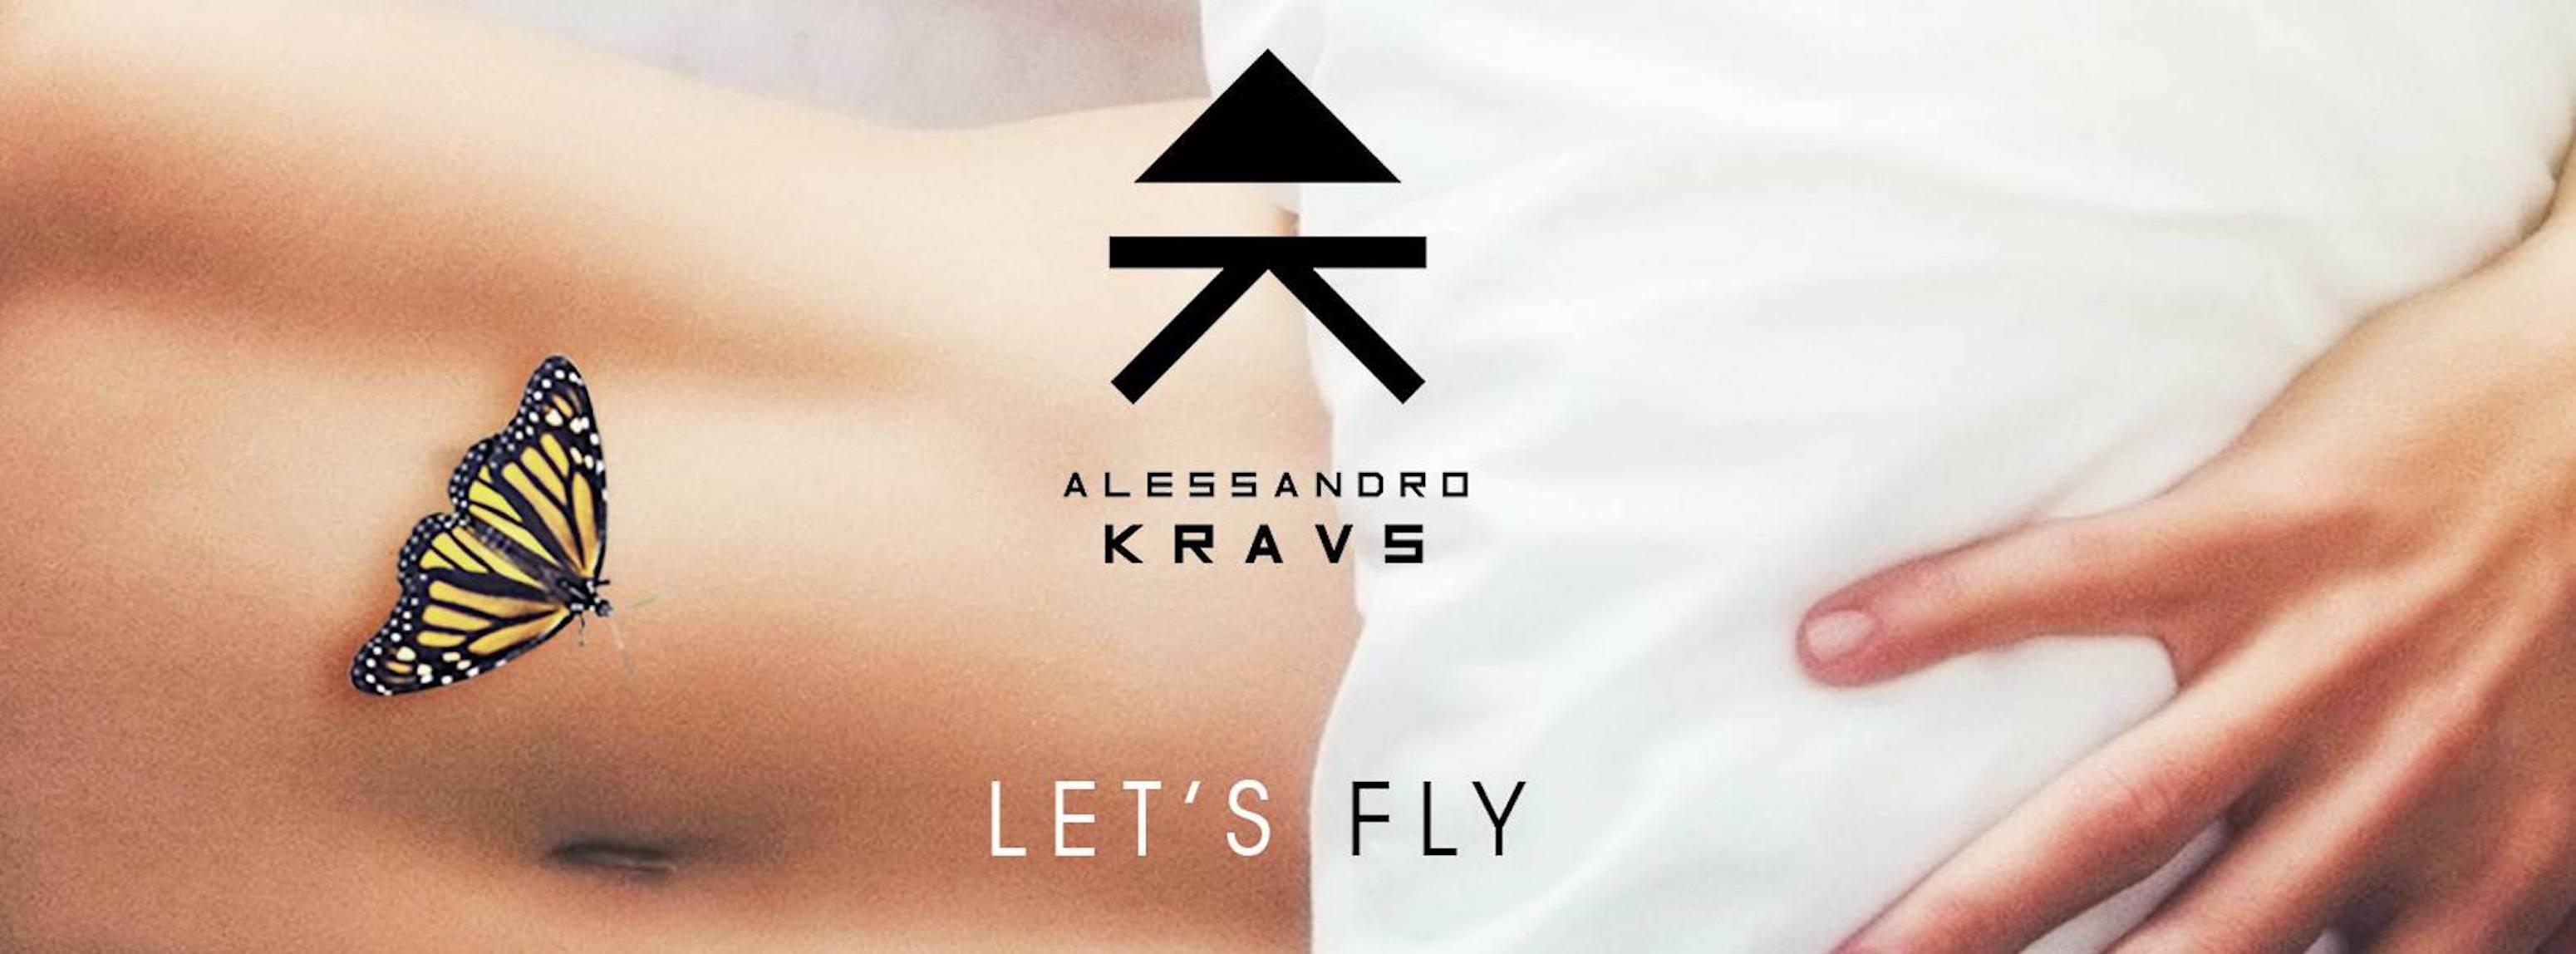 Alessandro Kraus - Let's Fly EP